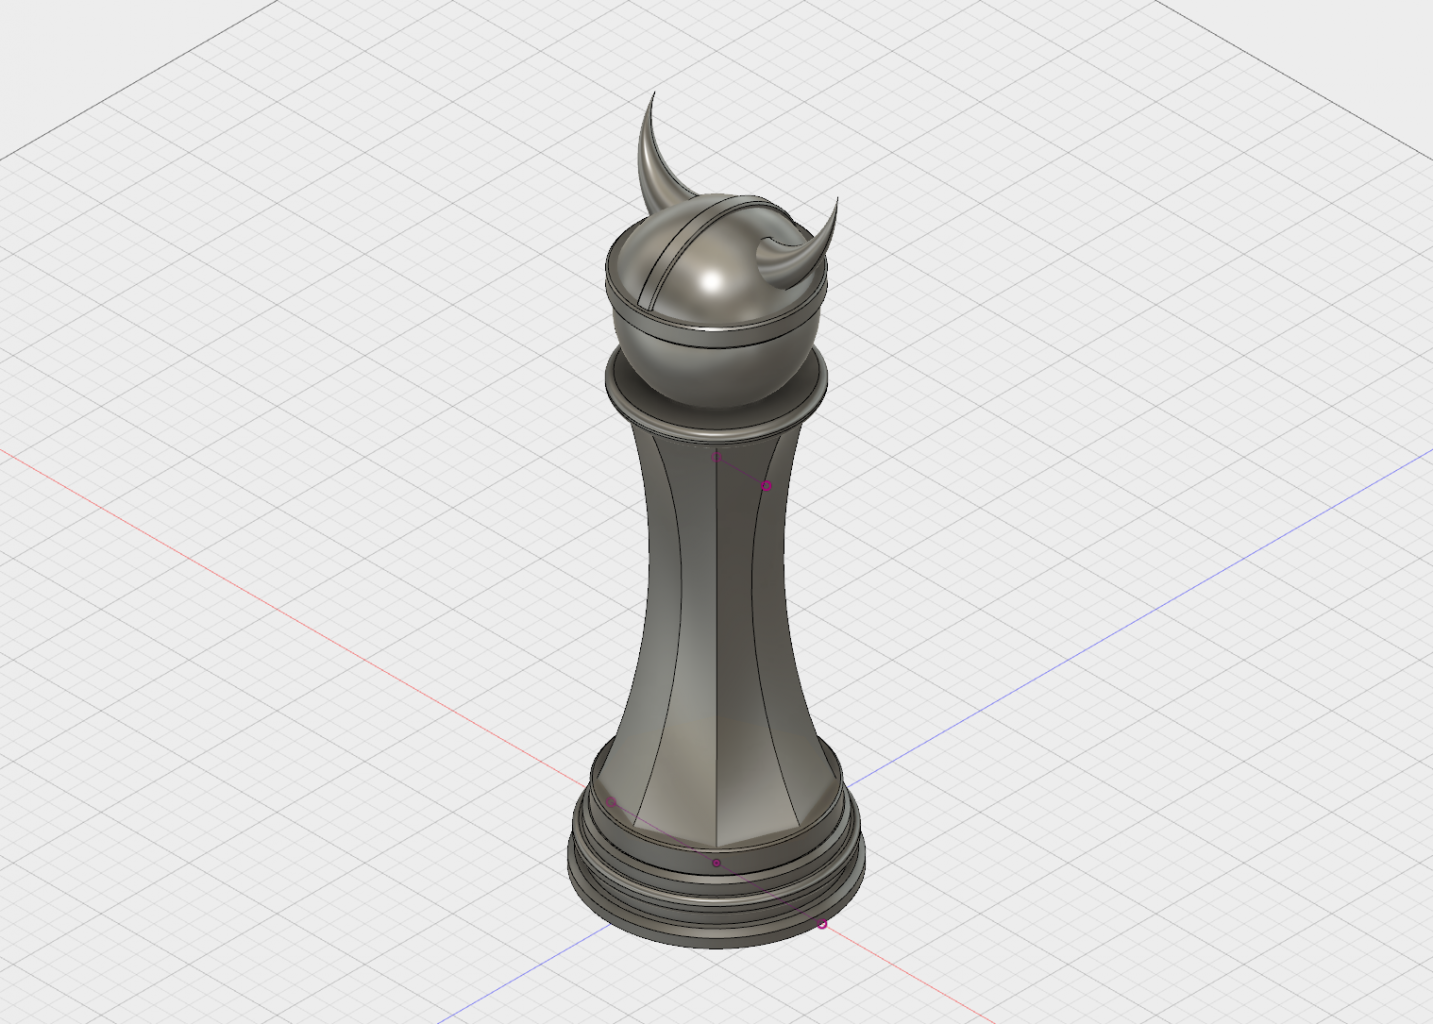 3D model of the Pawn